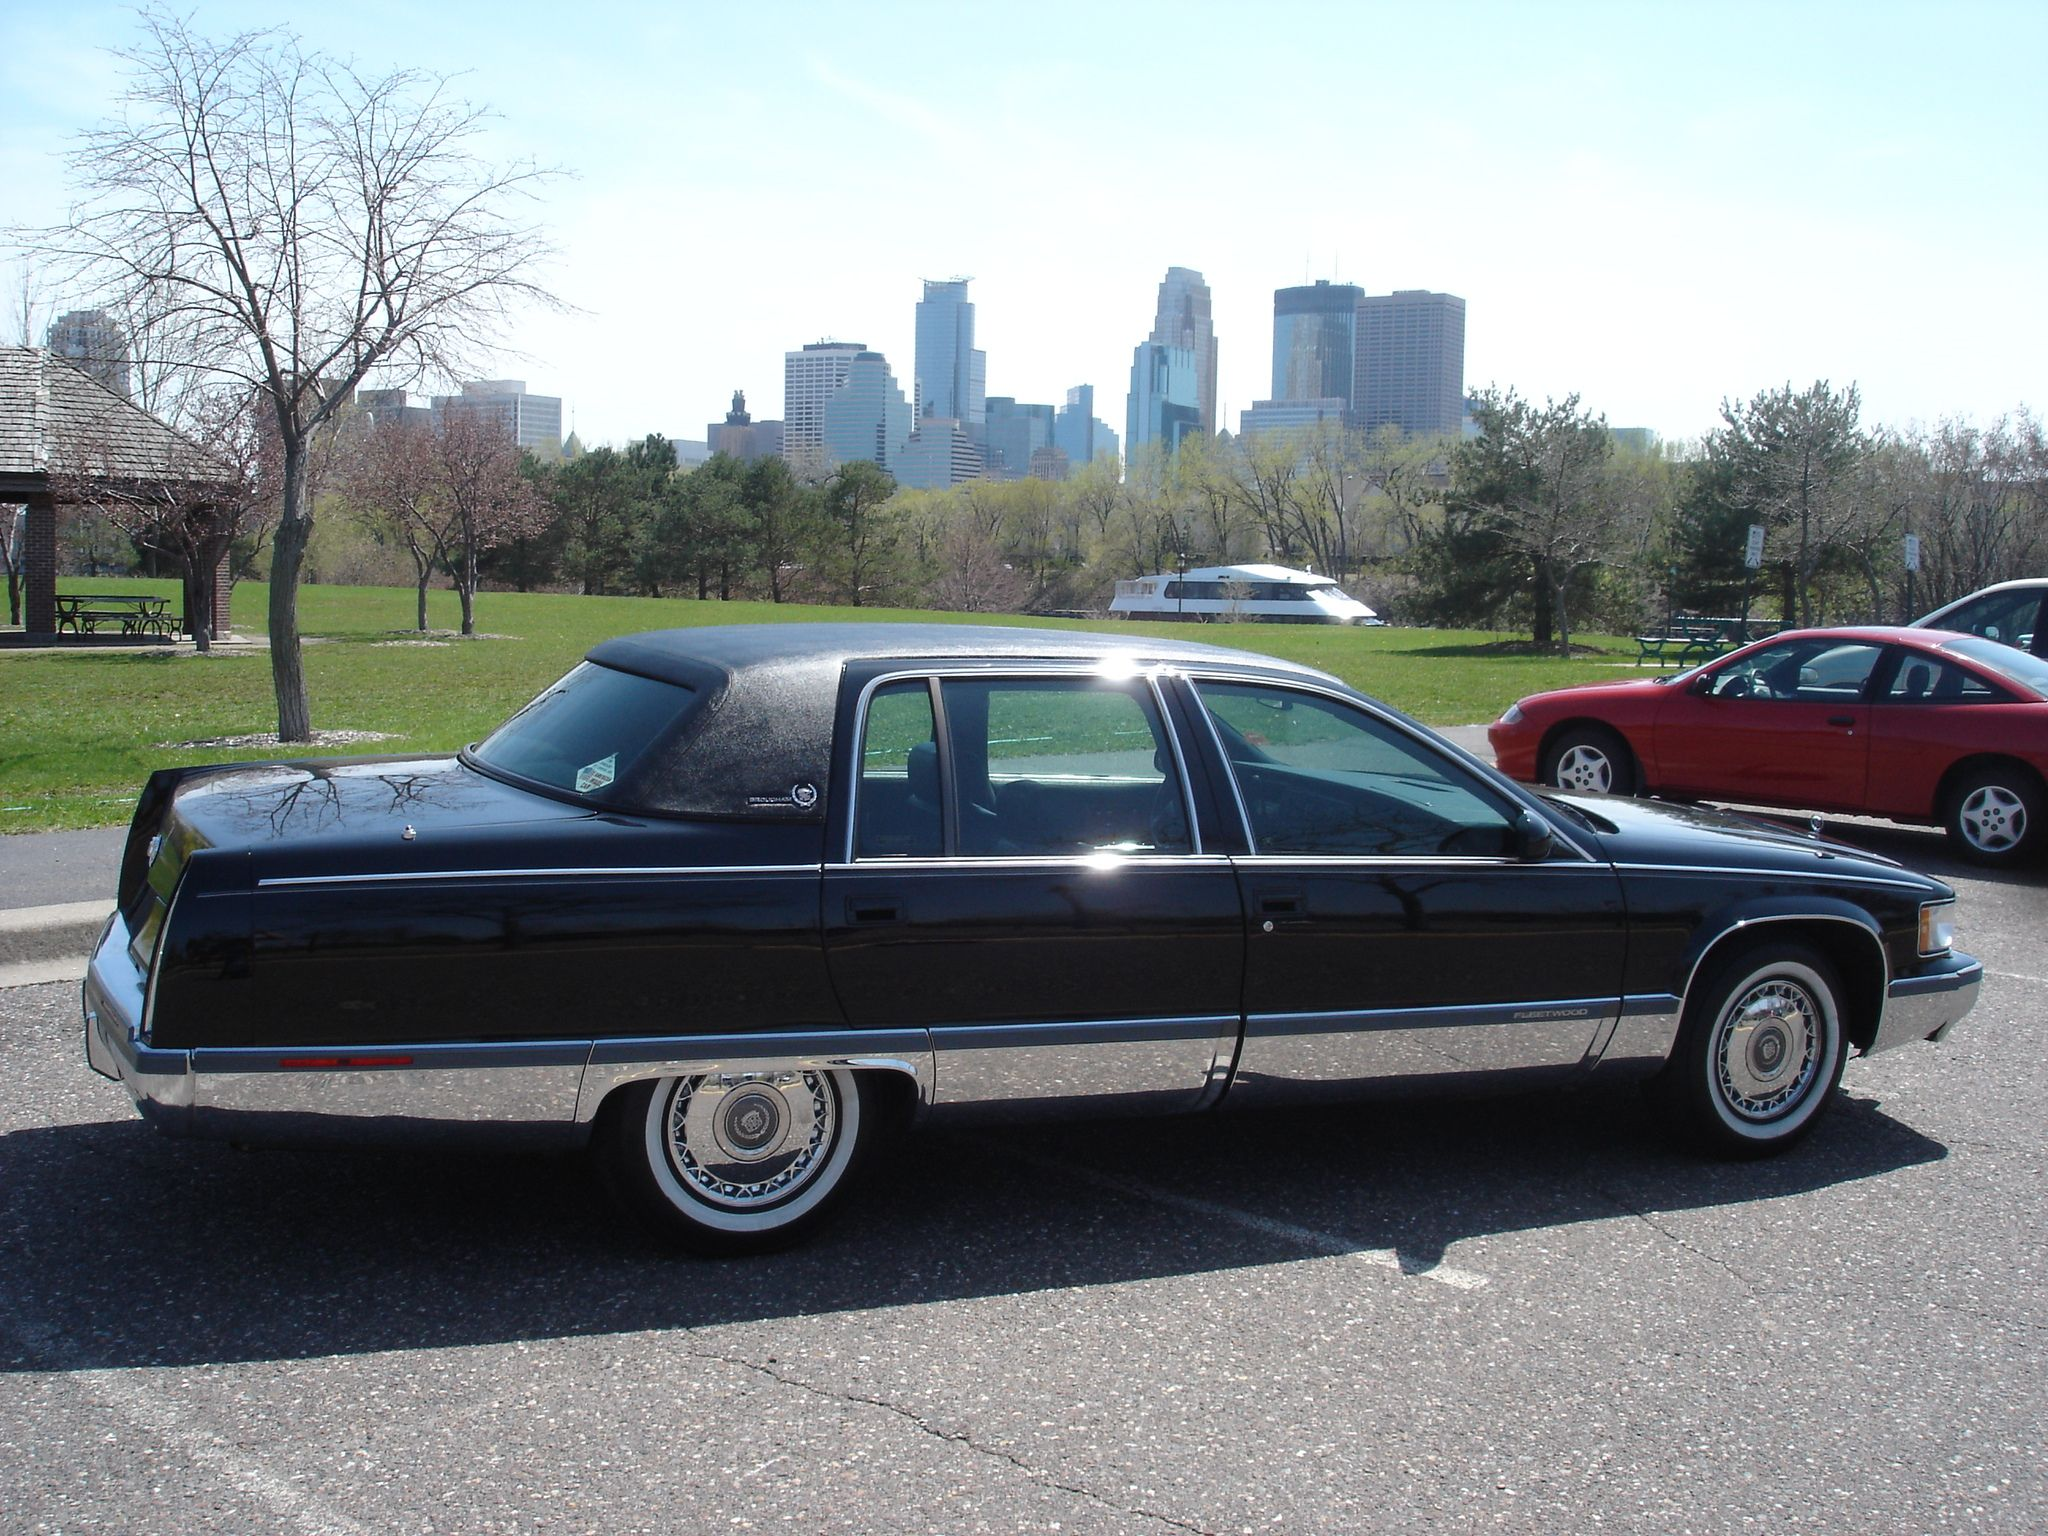 small resolution of cadillac fleetwood brougham i used to dream about this car when i was a kid wanted it in navy blue